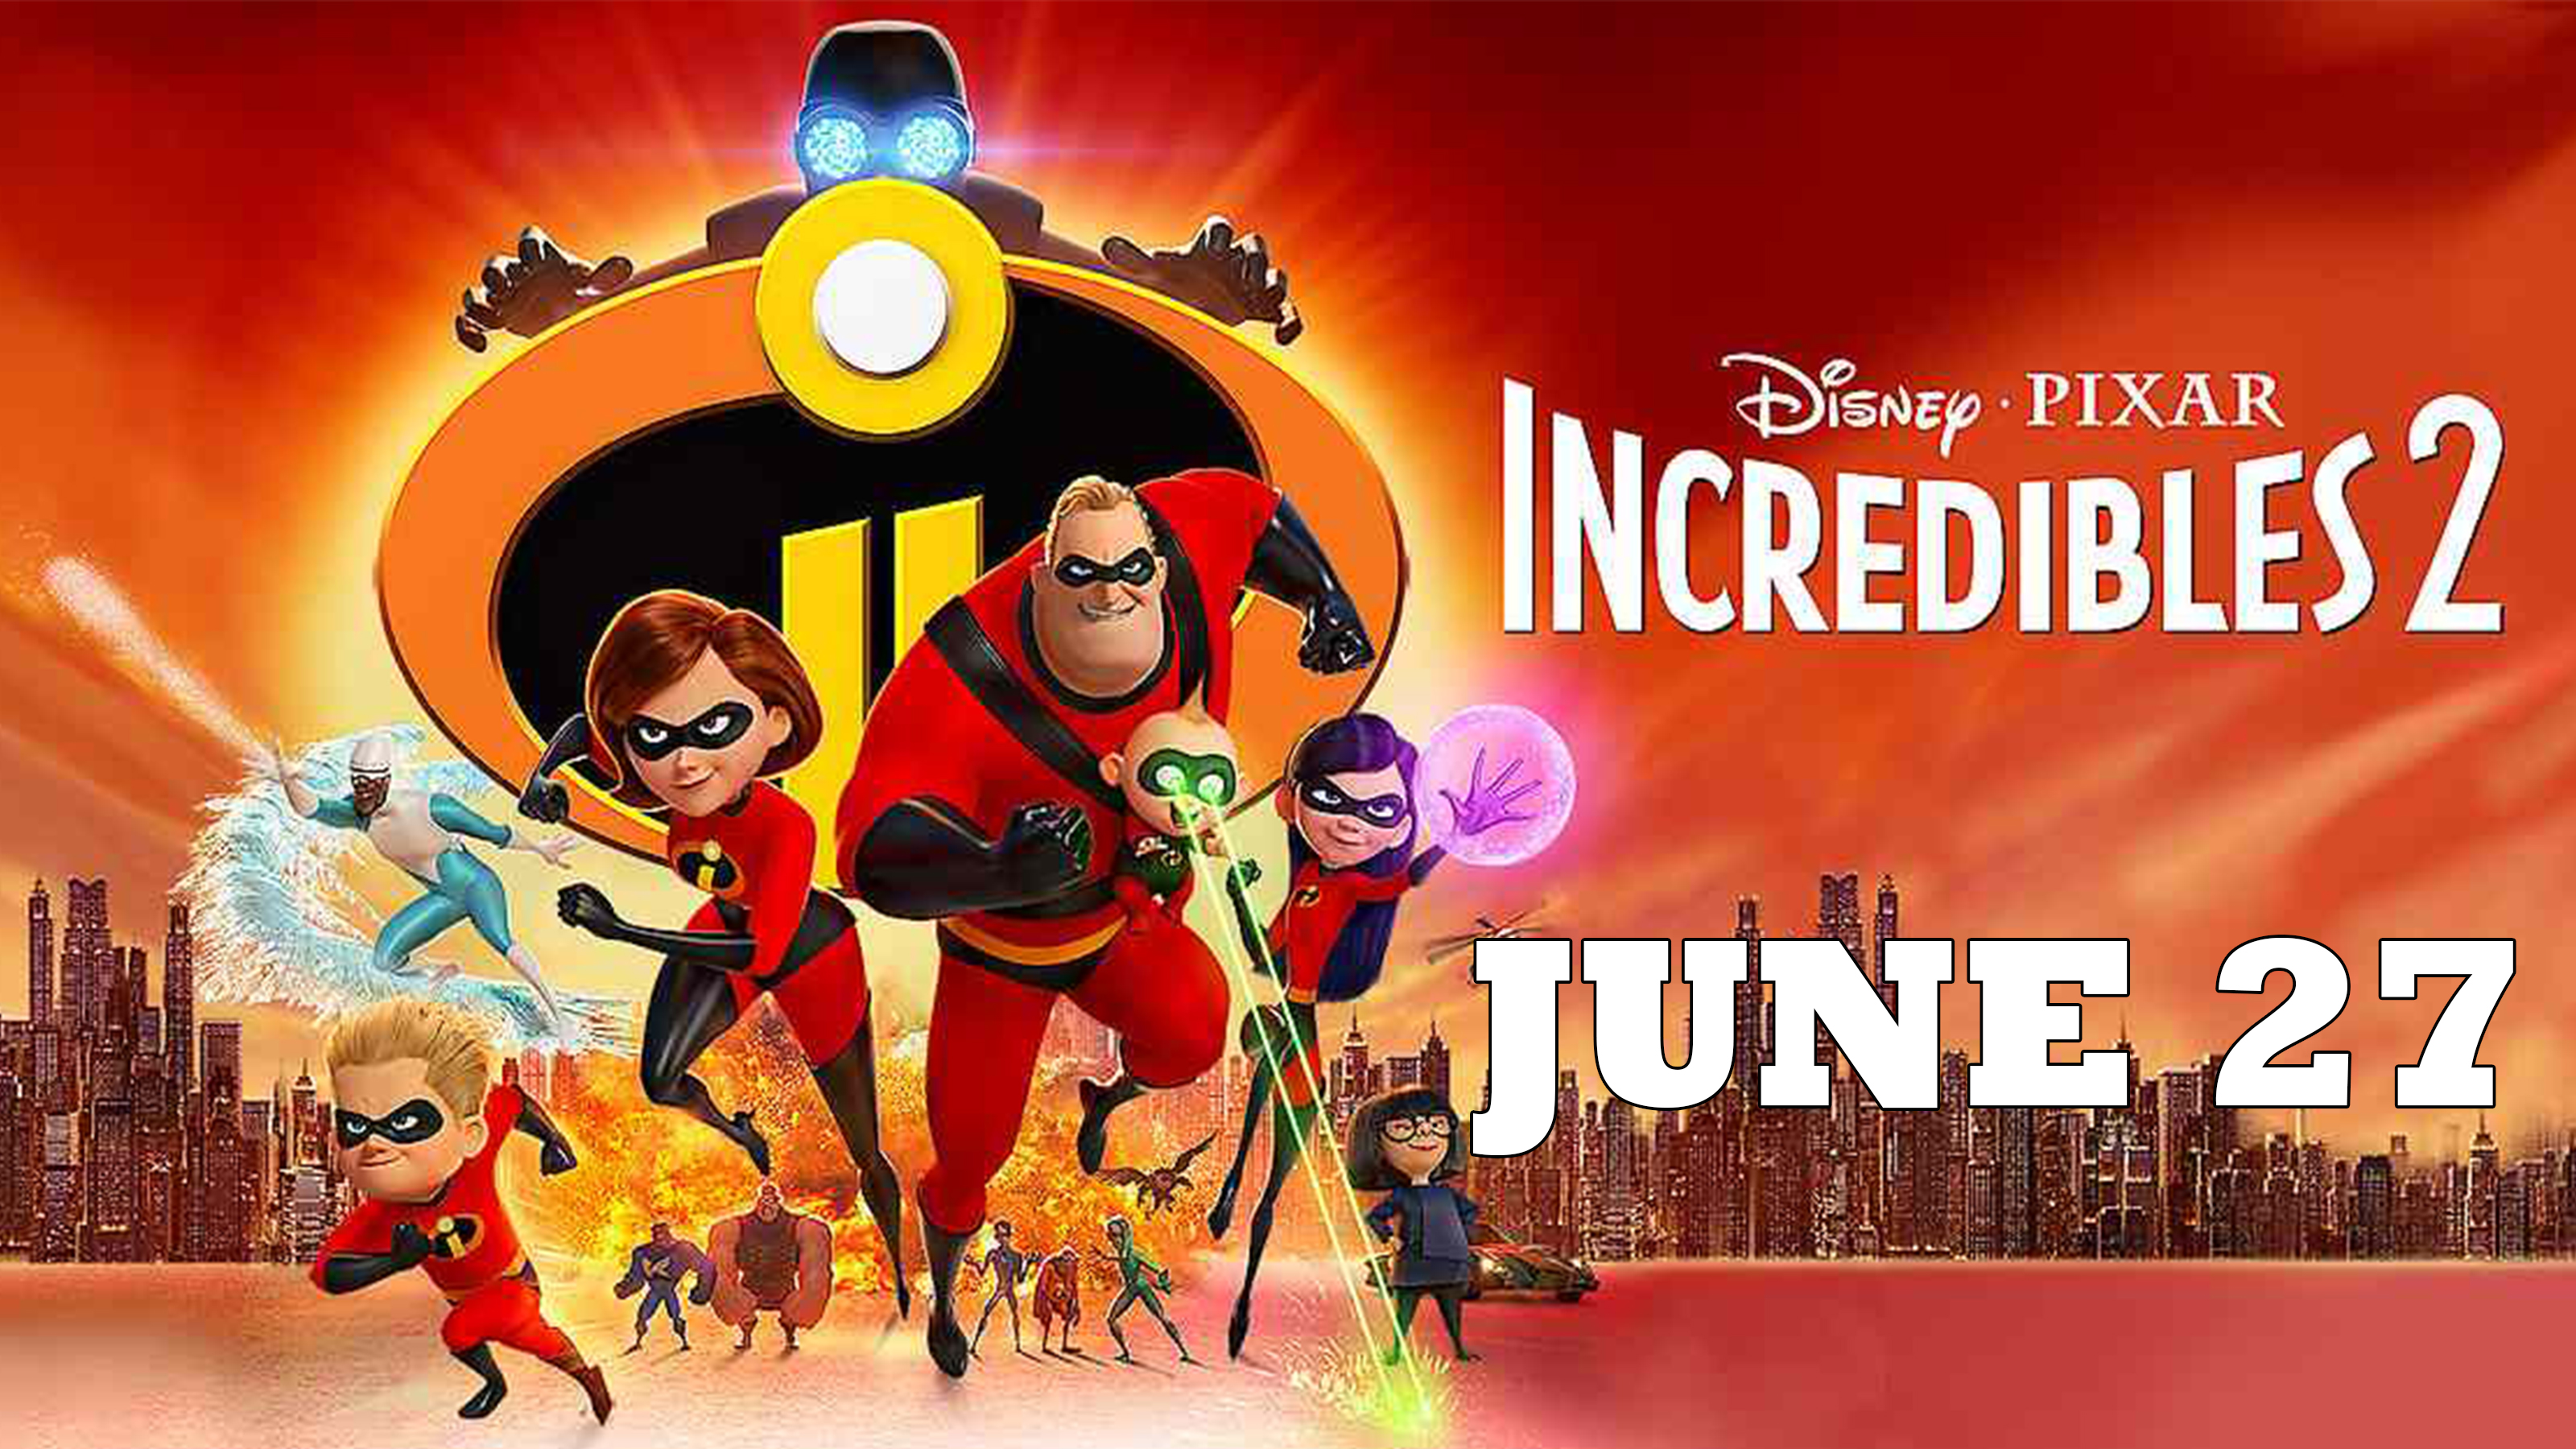 The Incredibles 2 - June 27